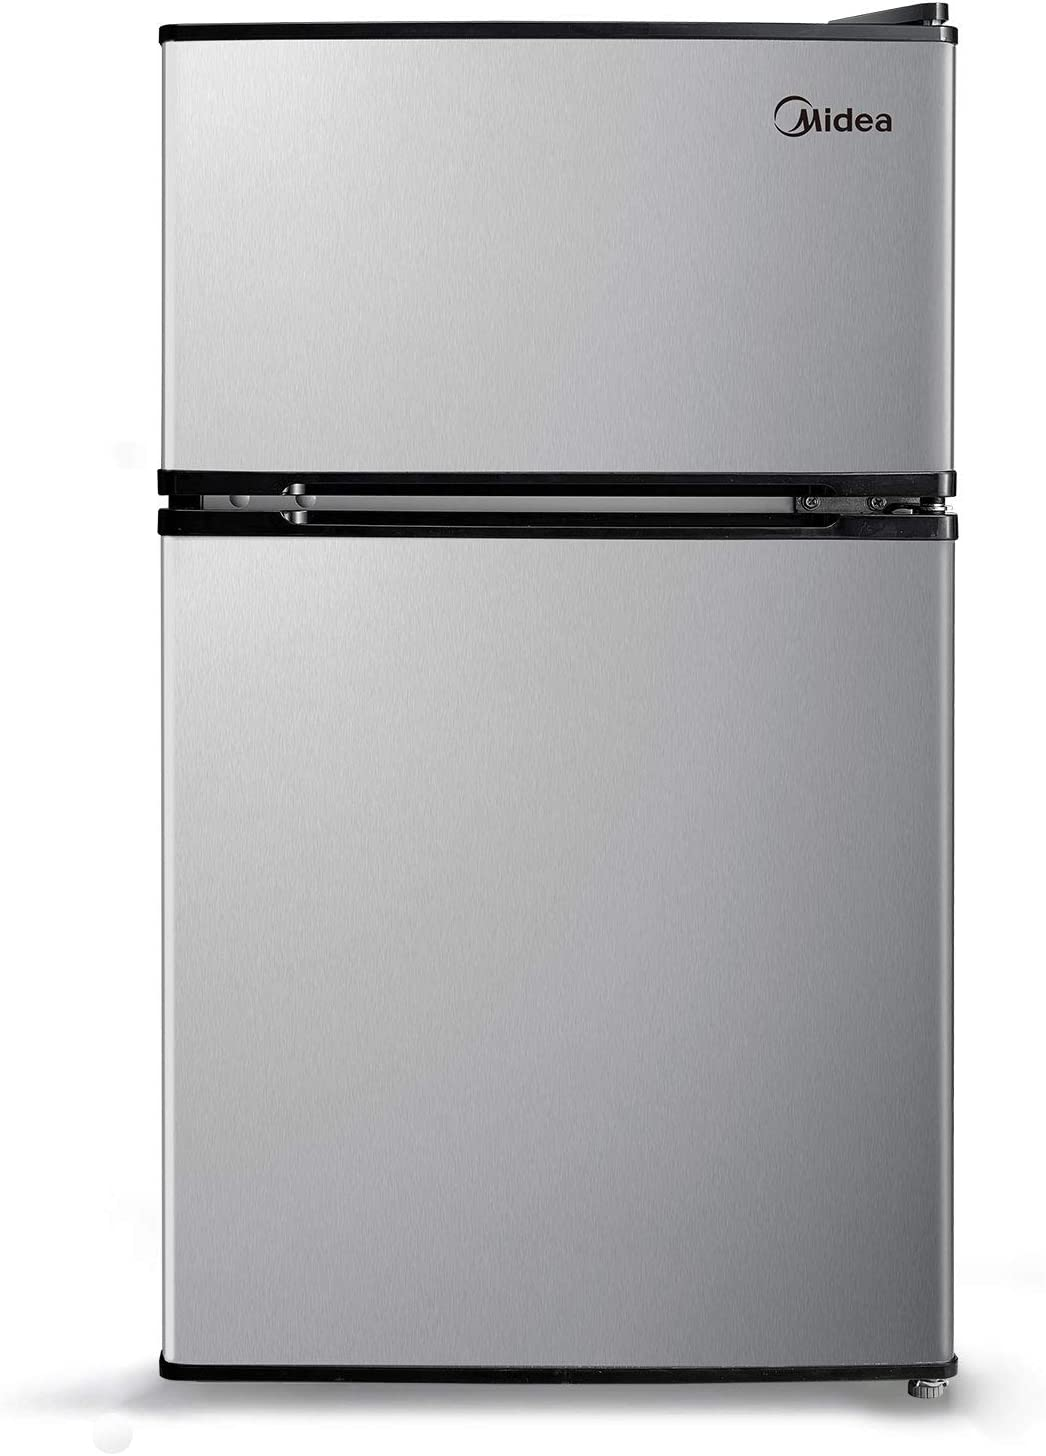 Midea Top Selling Best Popular Mini Refrigerator Under a Lower Price.